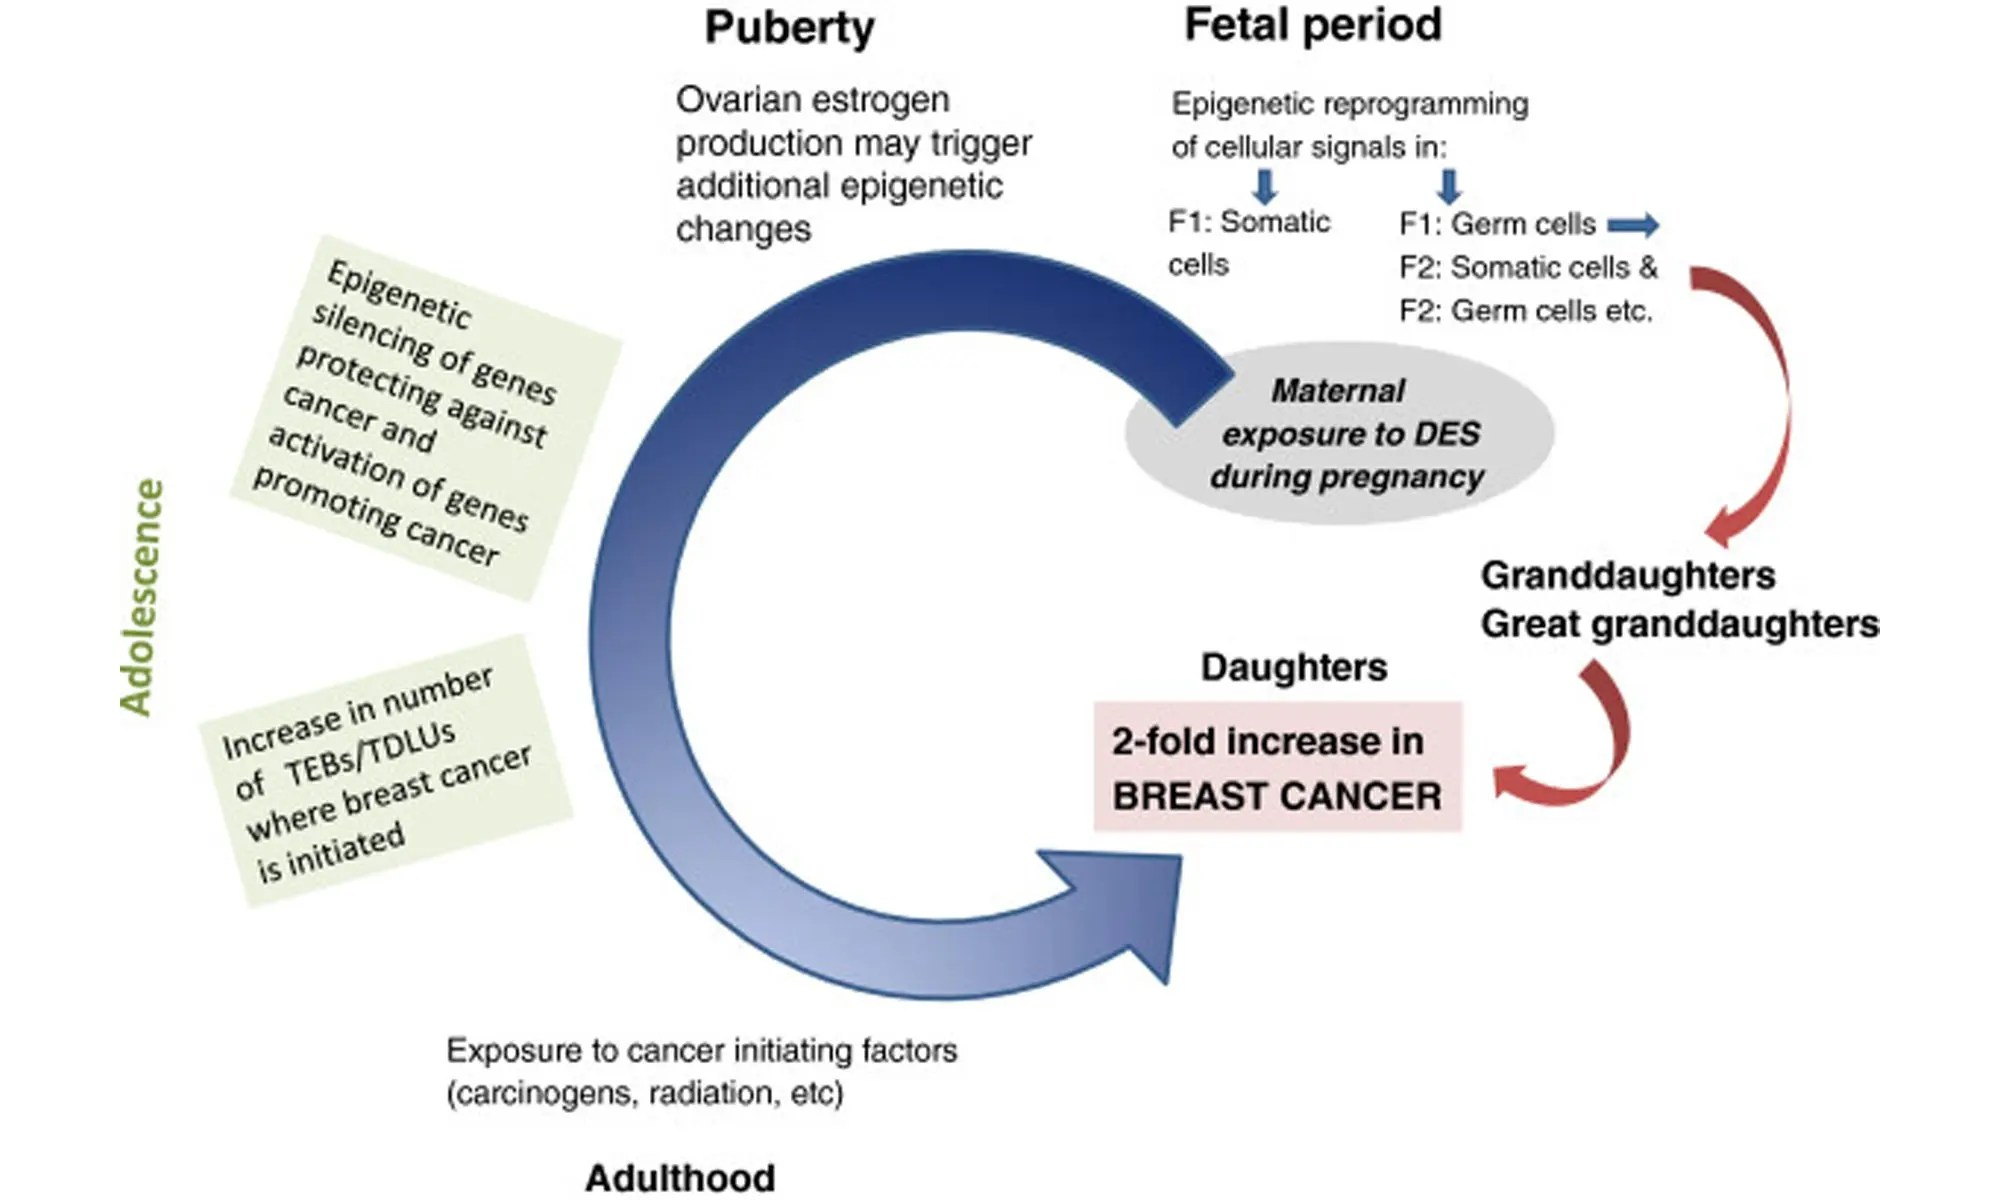 image of Epigenetic alterations induced by in utero diethylstilbestrol exposure